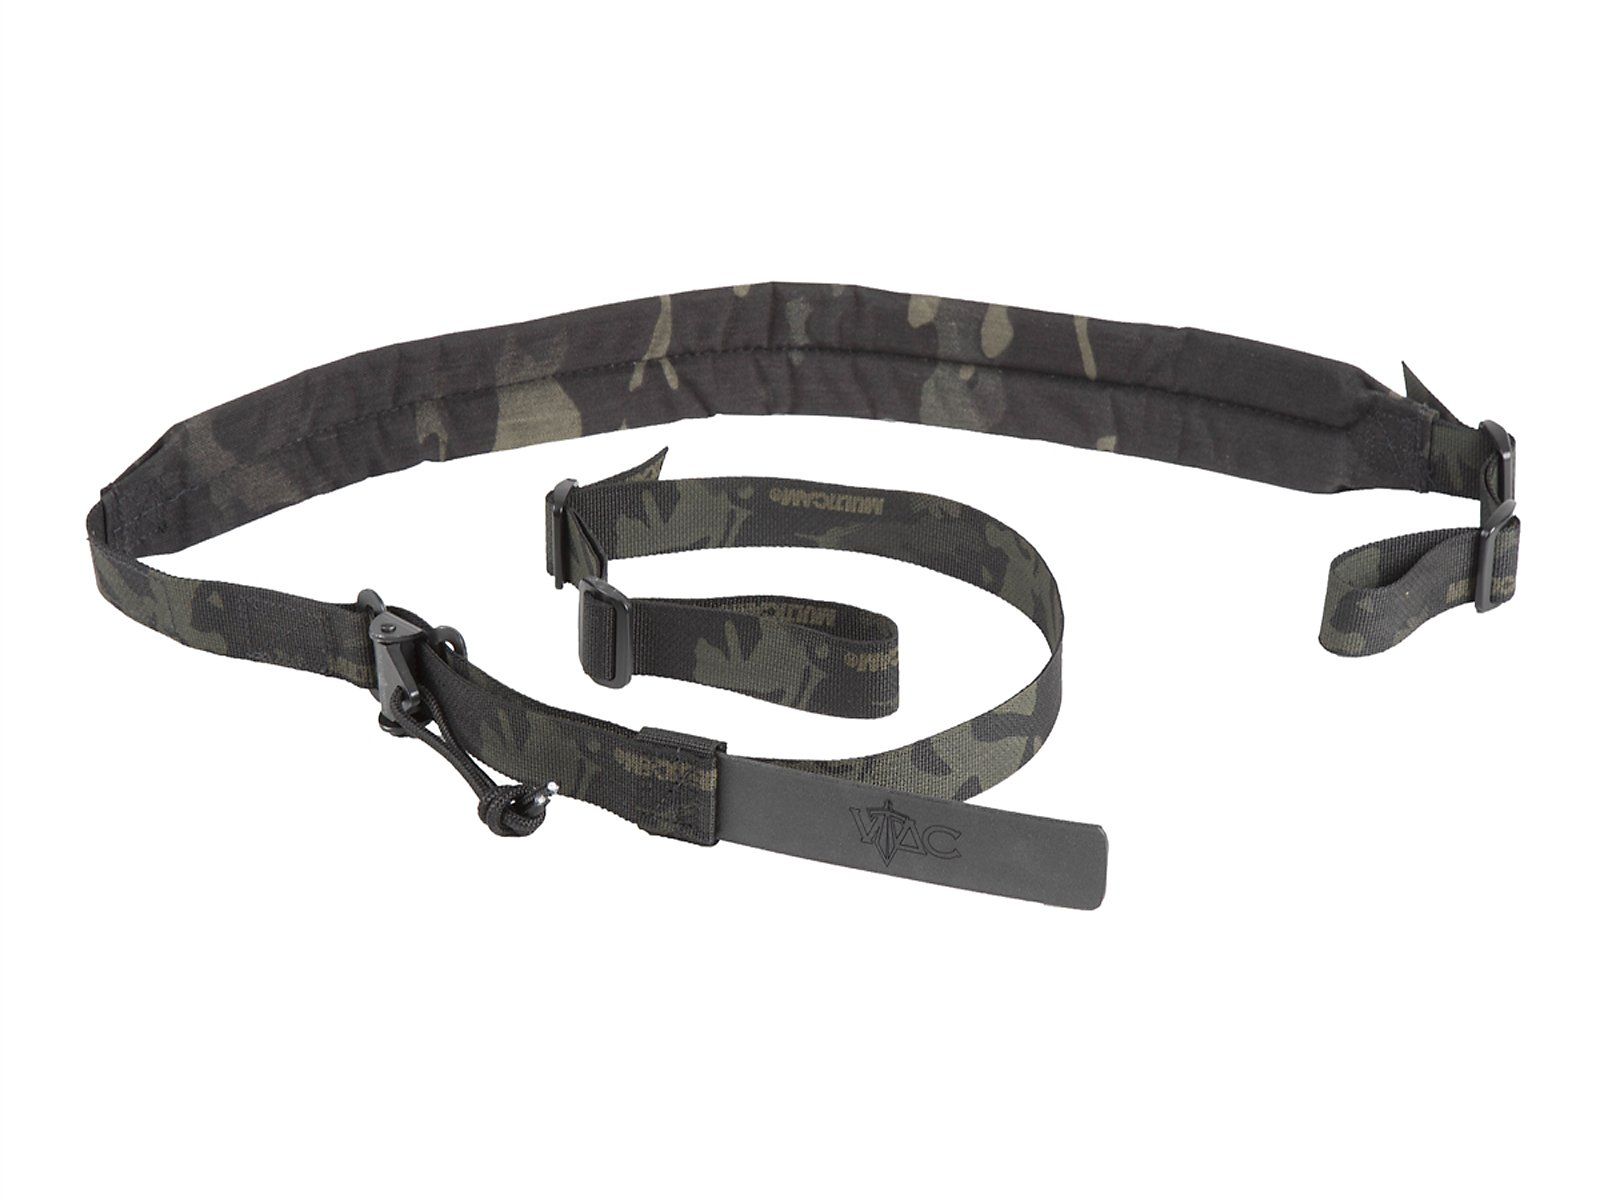 Viking Tactics Wide (Padded) Hybrid 2 point Sling (light weight-upgrade) (Black Multicam) by Viking Tactics